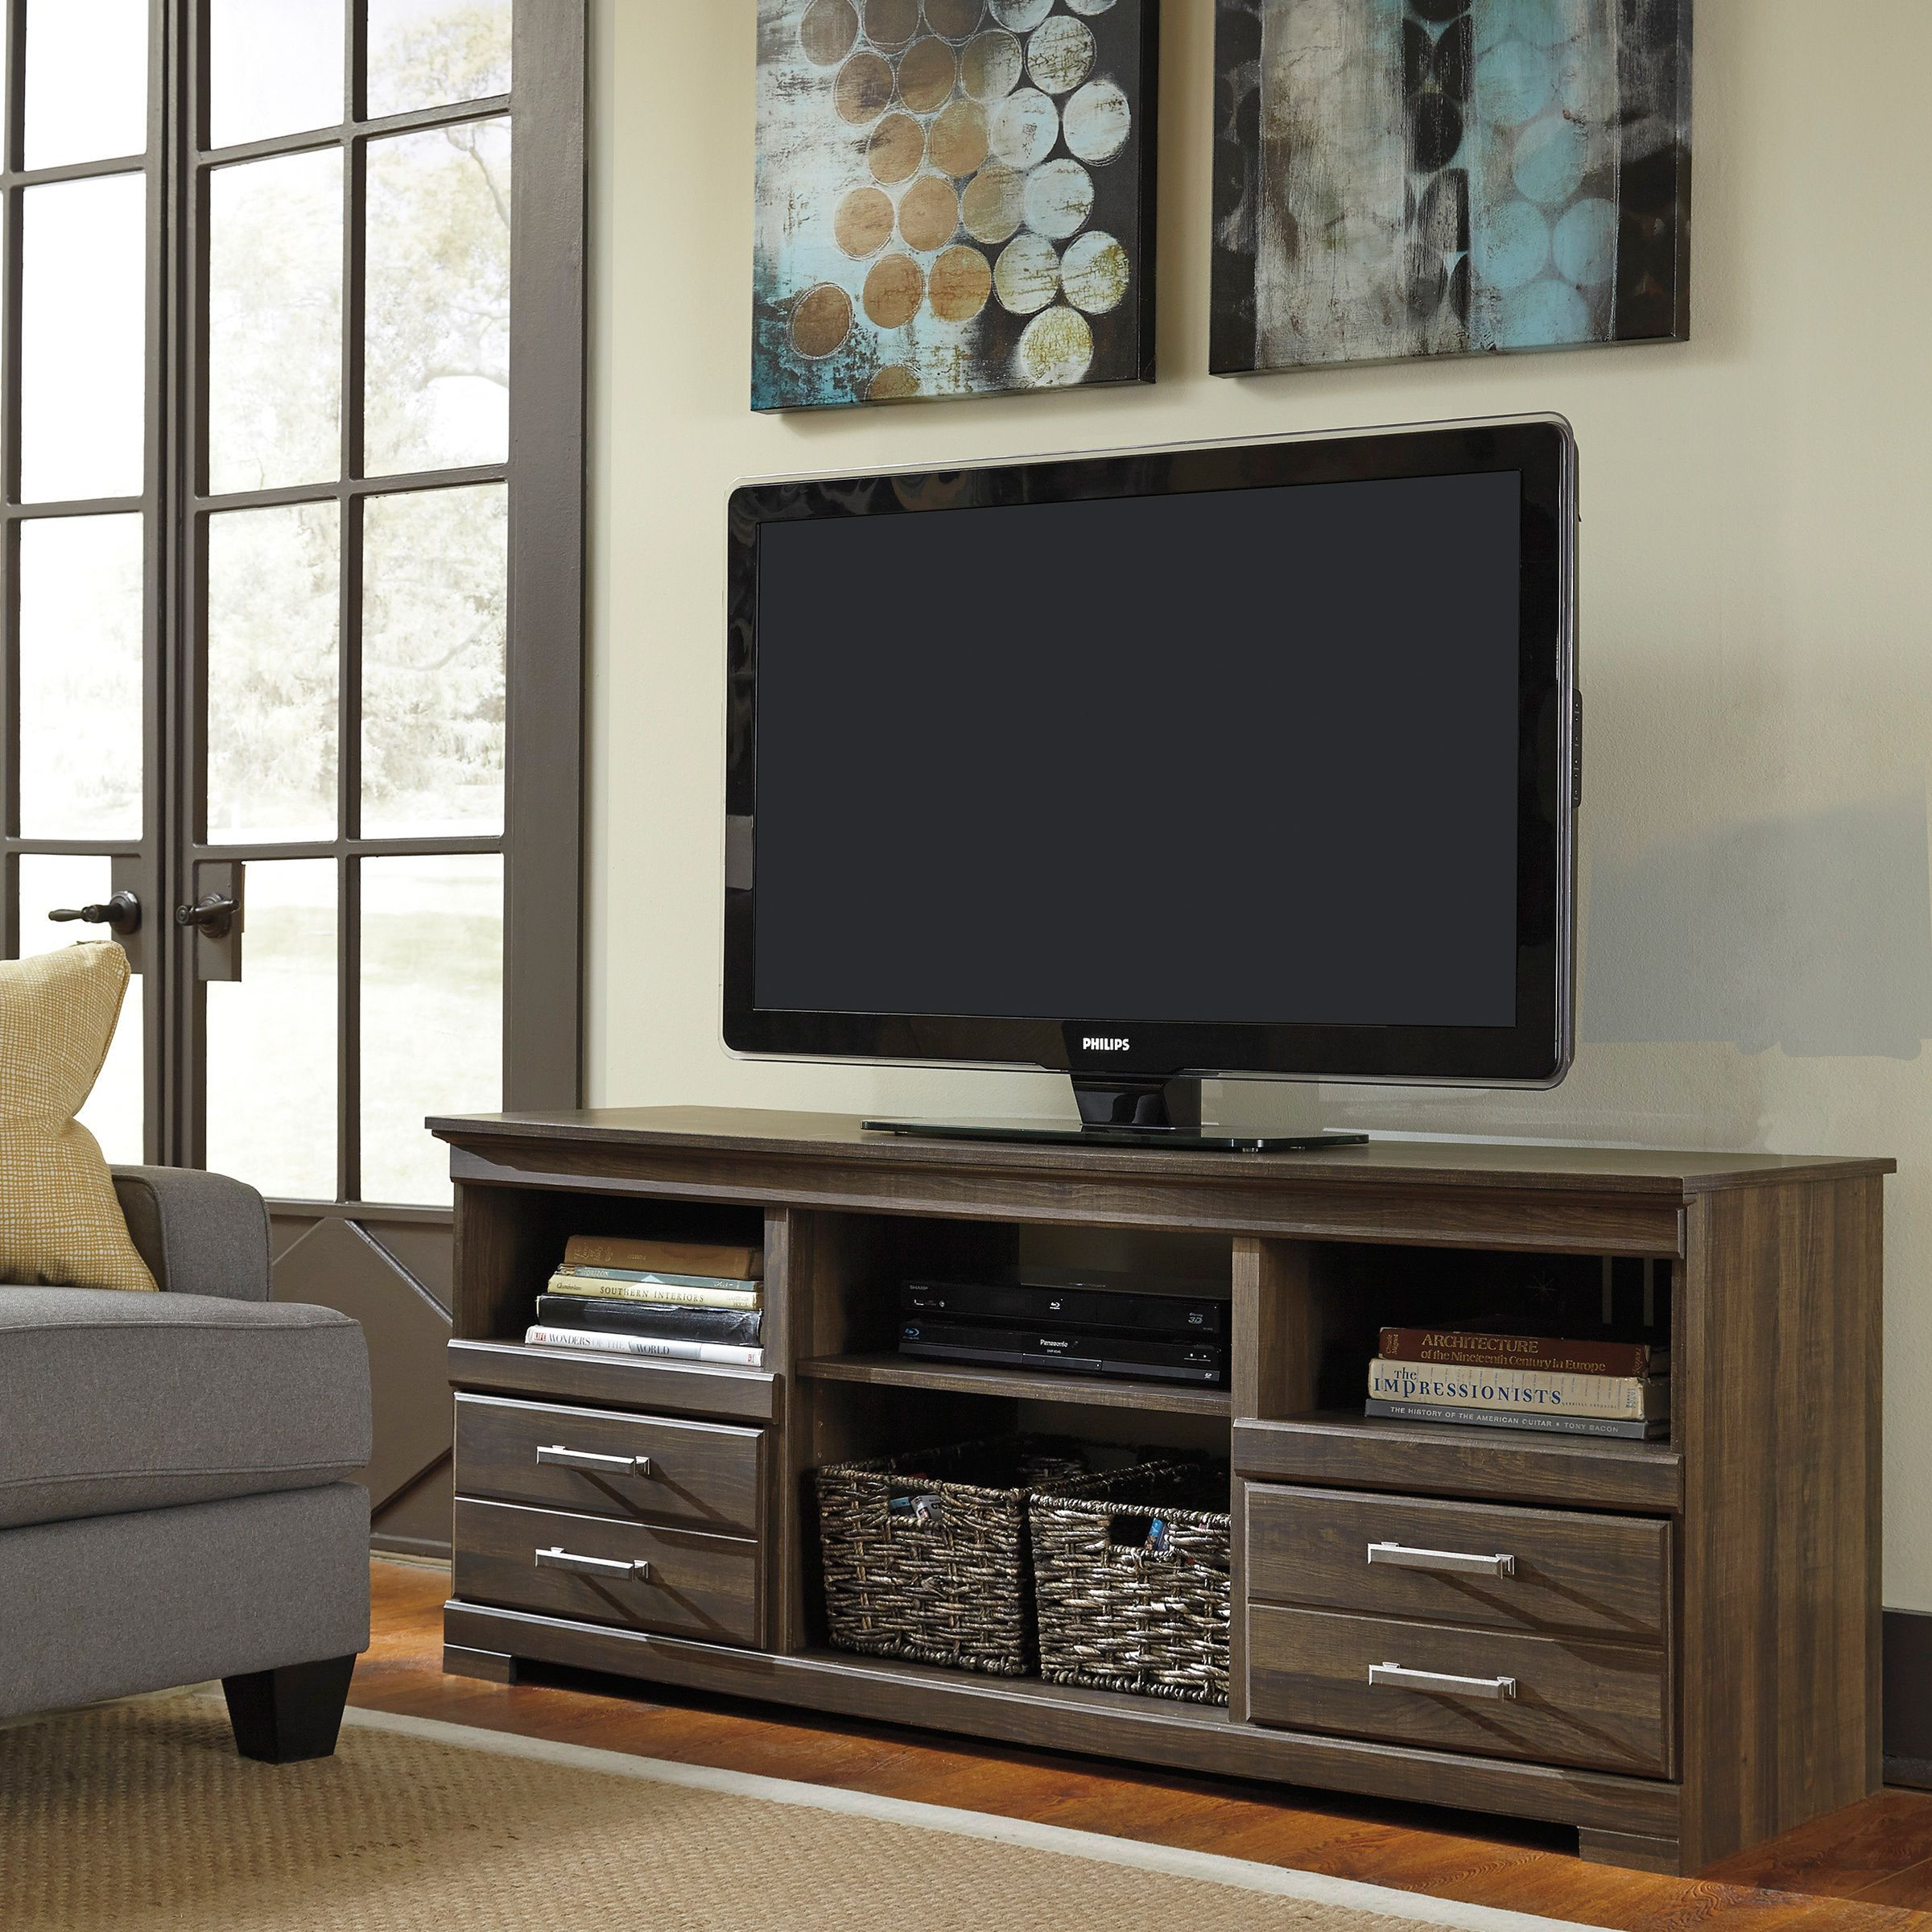 Lovely Exhibit A Sense Of Modern Style In Your Living Space With This Lavish TV  Stand.